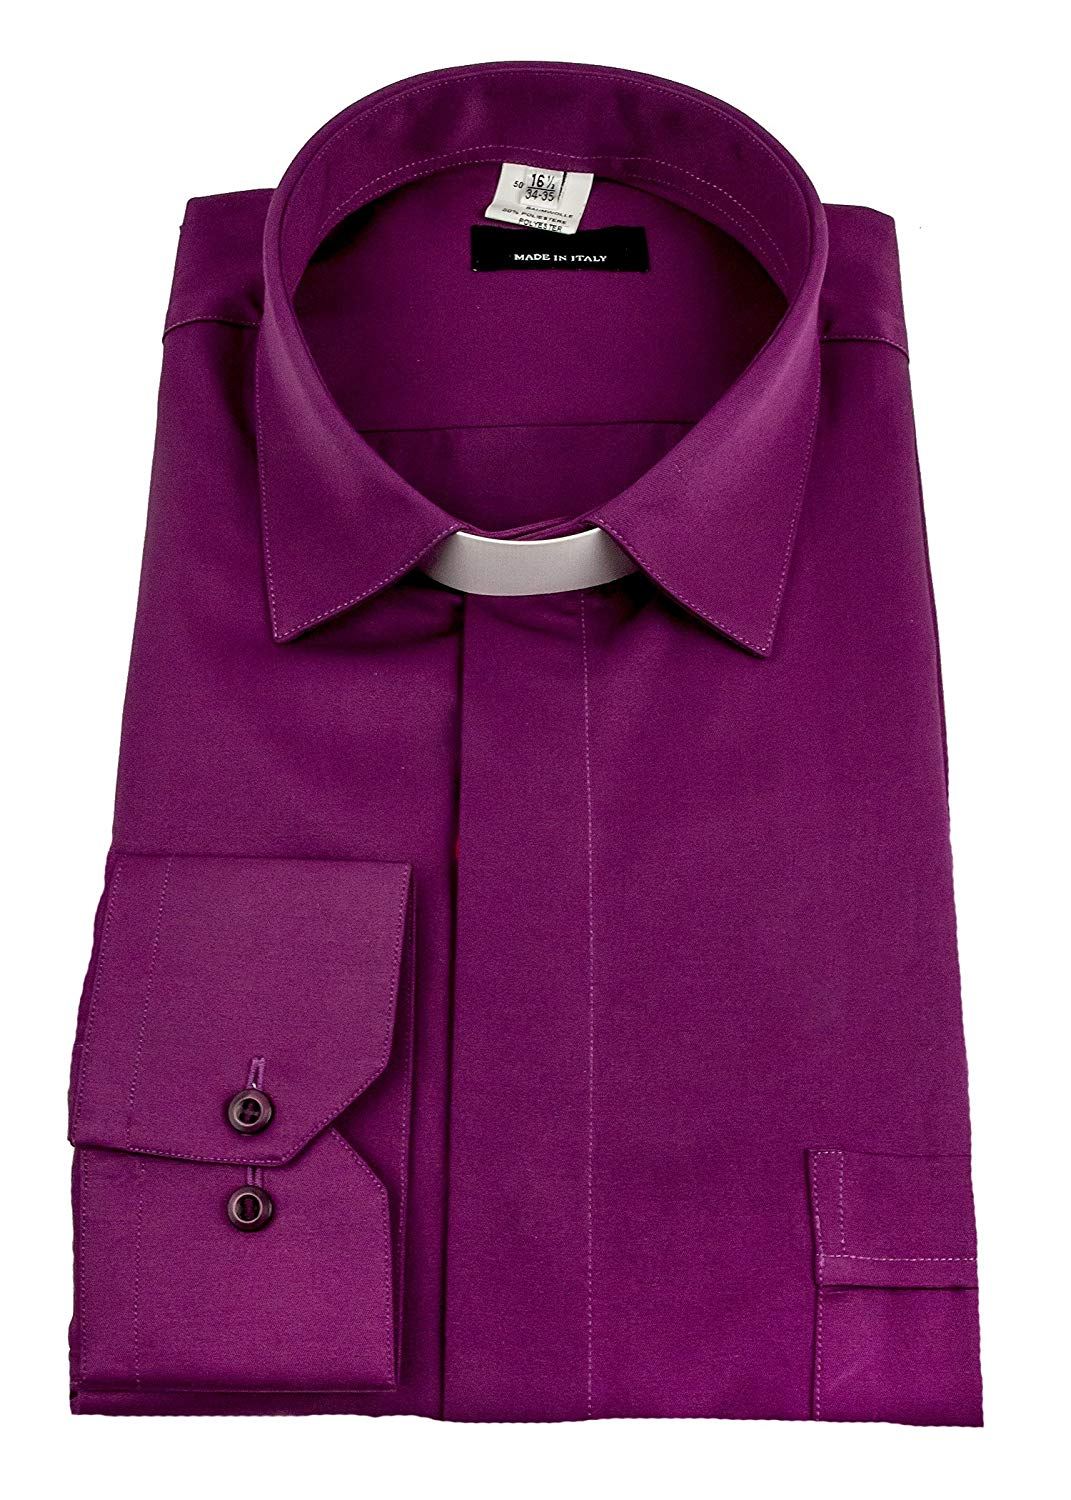 37e2bc8326 Get Quotations · Mercy Robes Mens Long Sleeves Dress TAB Collar Clergy Shirt  (RED Purple)